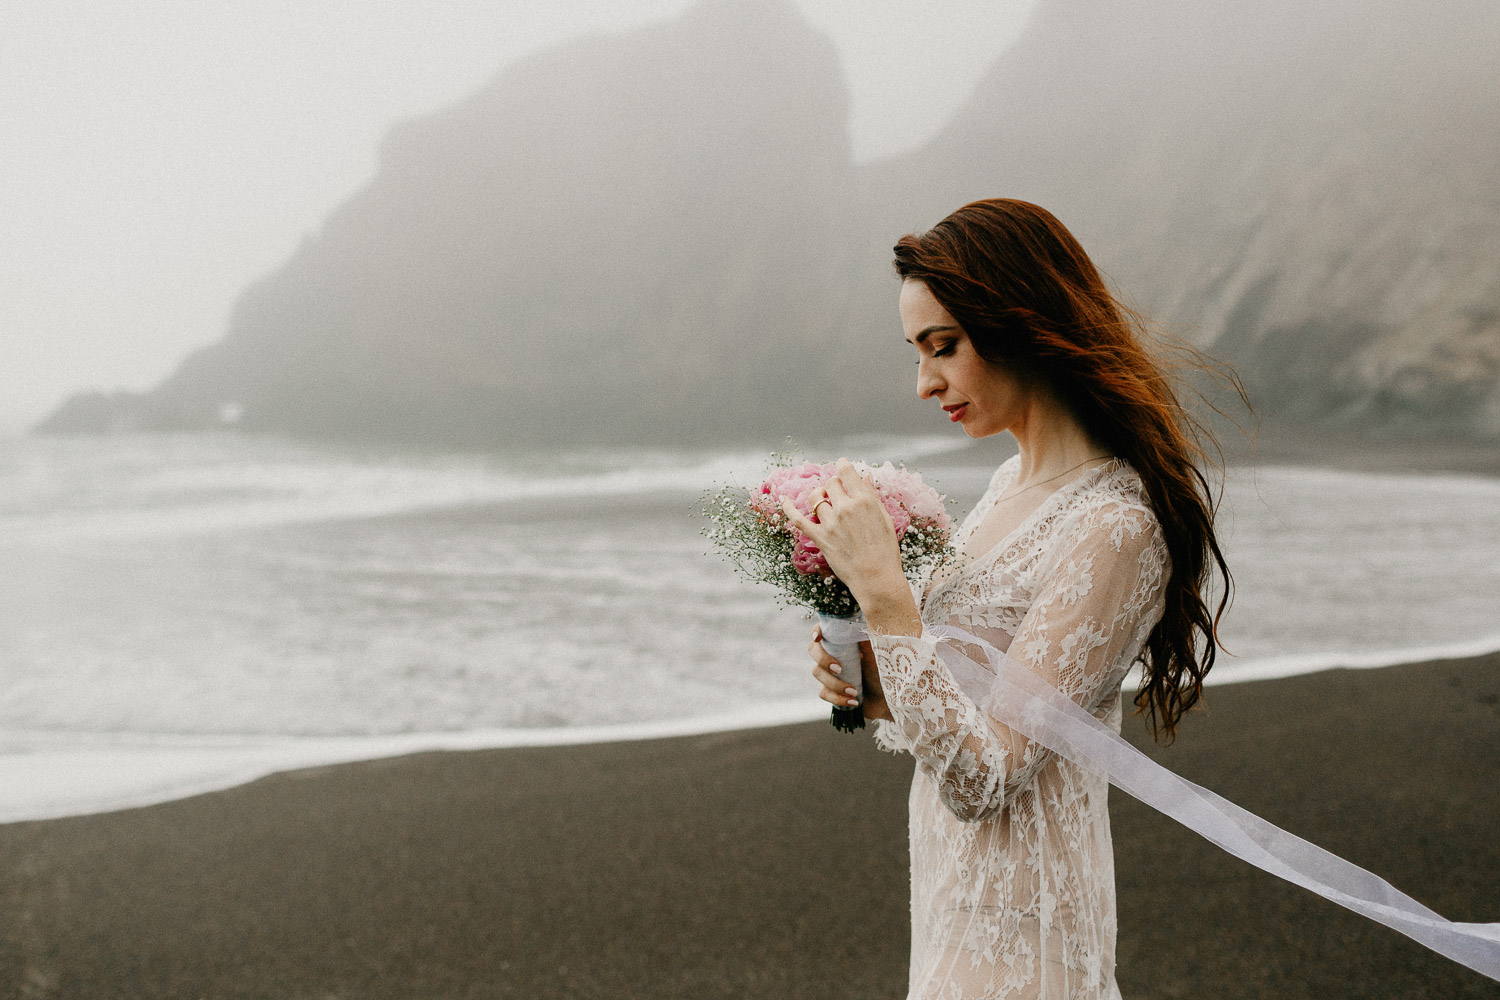 Image of red hair bride plays with pink bouquet on beach